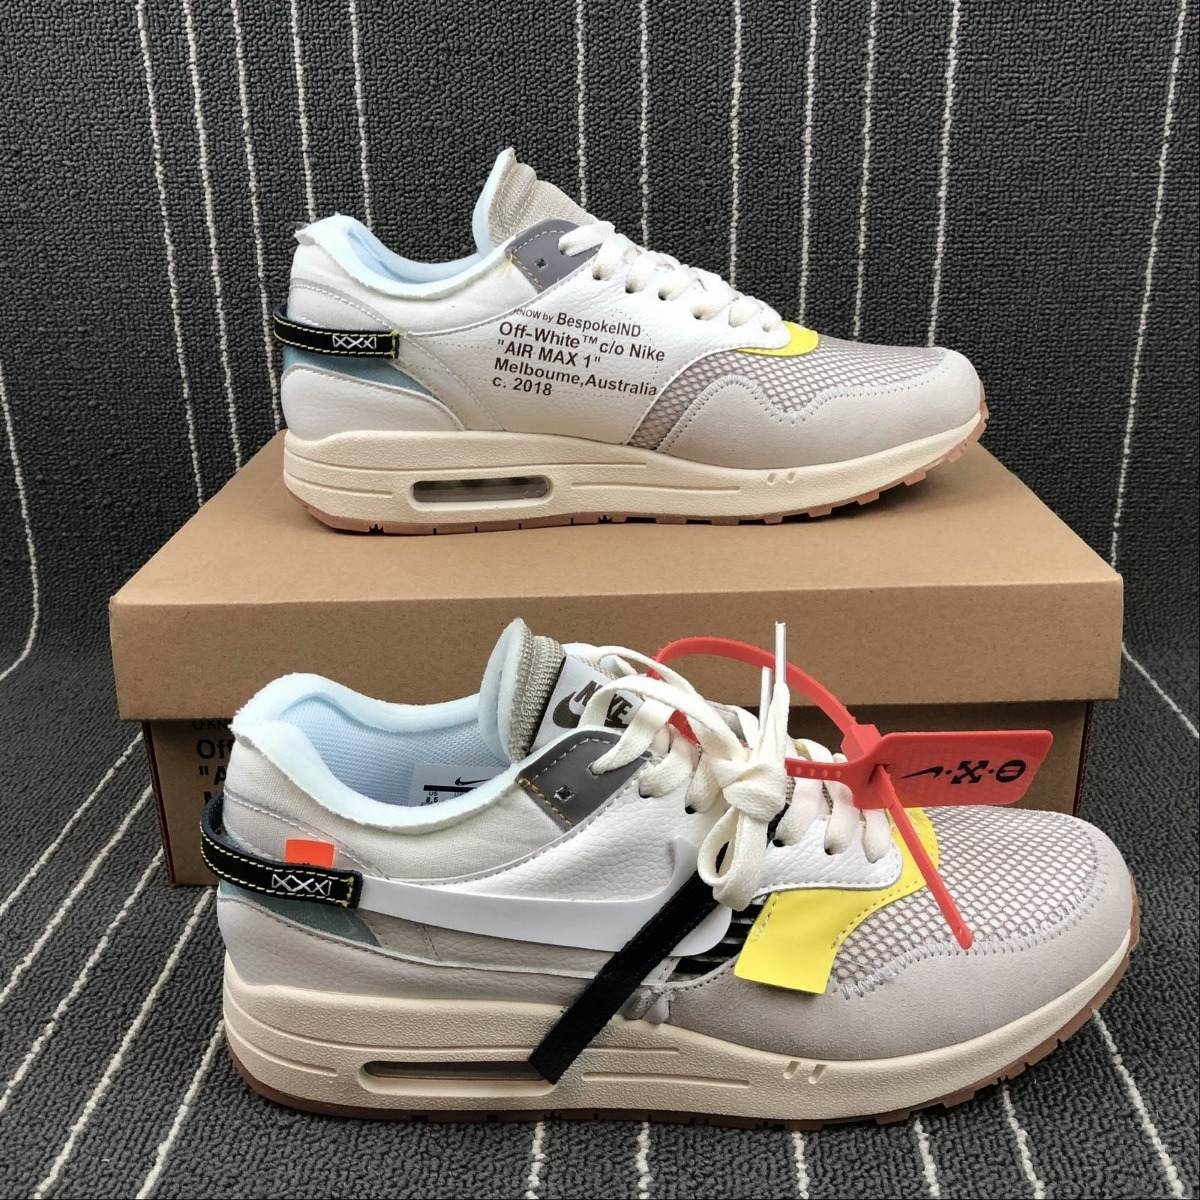 Zapatillas Nike Air Max 1 Off white X Off white 00 40 45 S 550 00 white 0a48b5